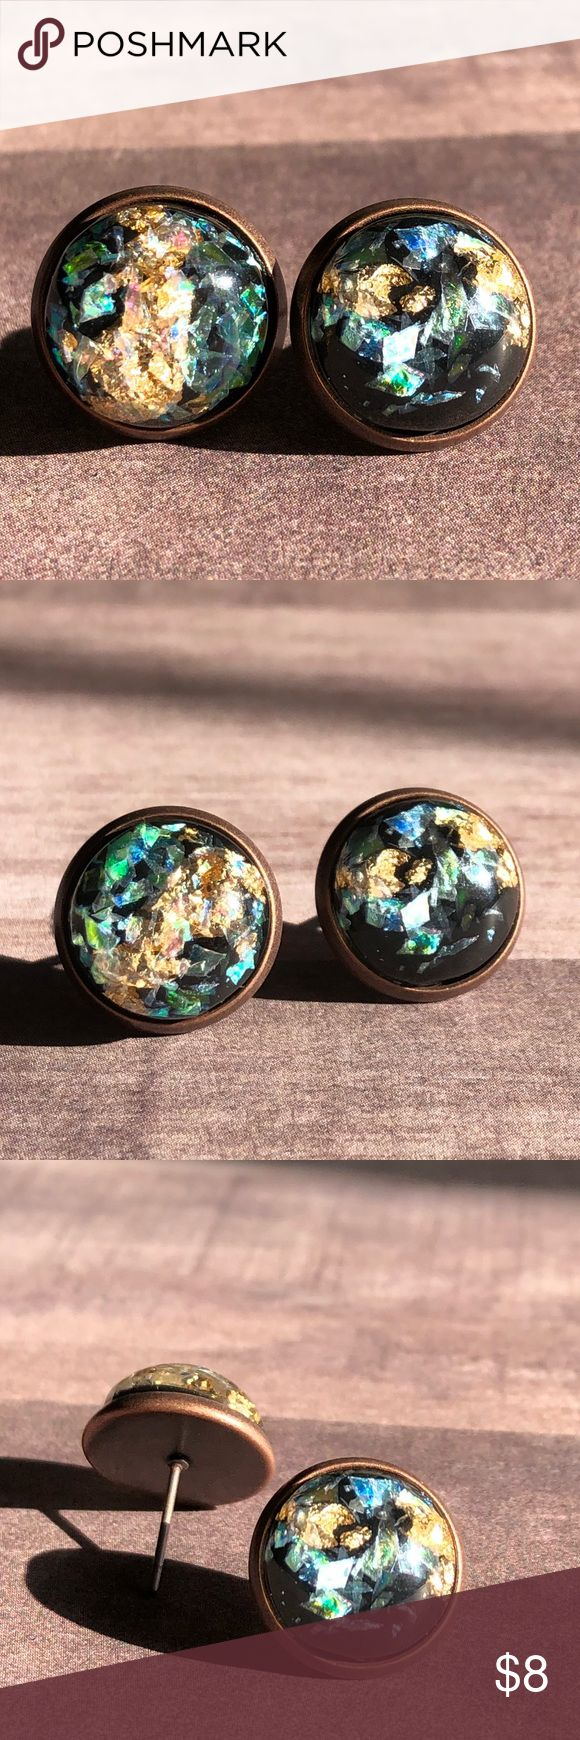 """🆕Black Opal Gold Metal Mix Stone Earrings! New, Handmade by Me! 🆕Style! Opal Stone mixed with Gold Metal! Listing in White, Black & Dark Blue; This listing is for the Black Stone in Copper Post Backs; Approx. 12mm or 1/2"""" Size; Can make in any Style Back Shown!📸These are my pic's of the Actual items!  ▶️1 For $8, 2 For $13, 3 For $15!◀️  ▪️3-$15 is only for items listed as such▪️ ▪️Post Back for Pierced Ears ▪️Nickel, Lead & Cadmium Free  *NO TRADES *Price is FIRM as Listed!  *Sales are…"""